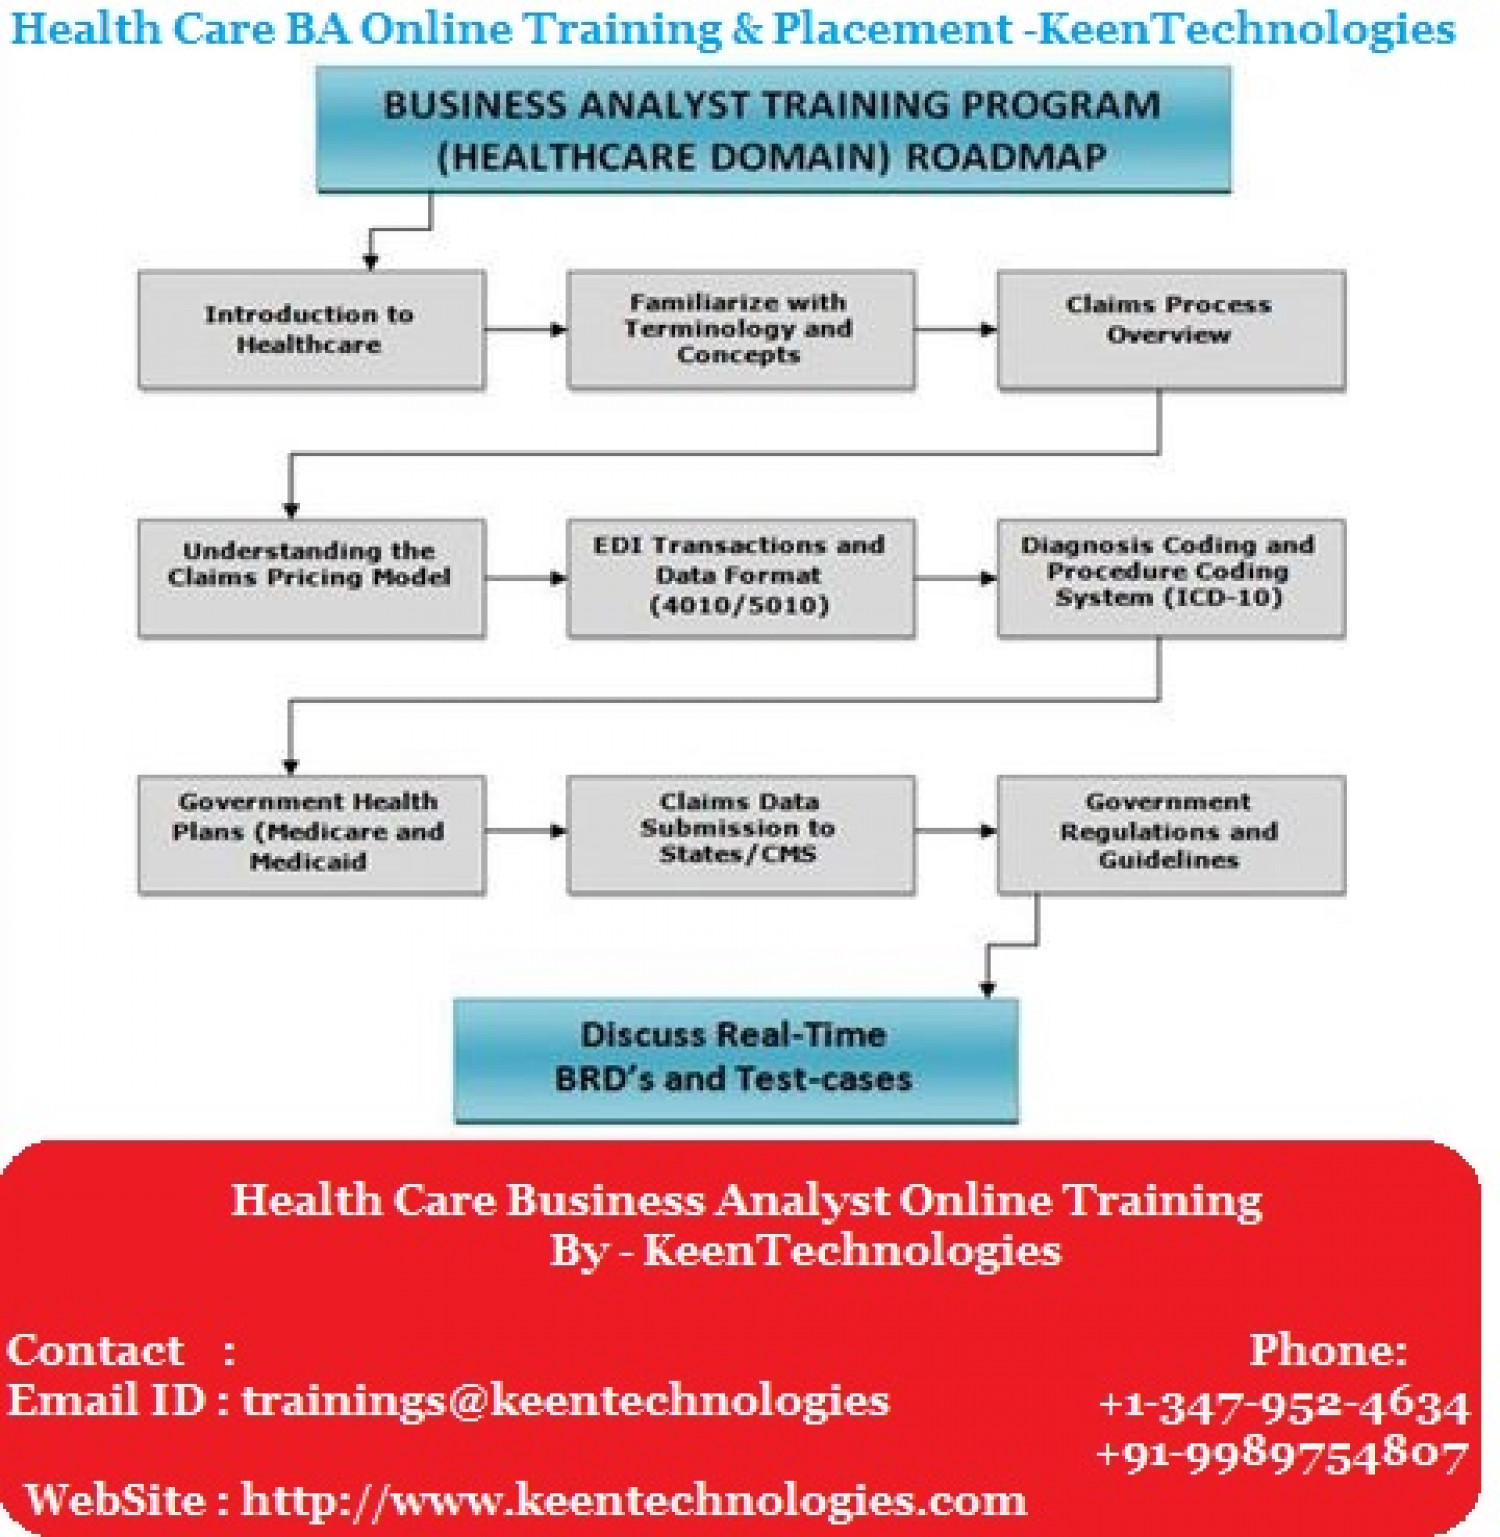 Pricing Analyst: Health Care Business Analyst Online Training